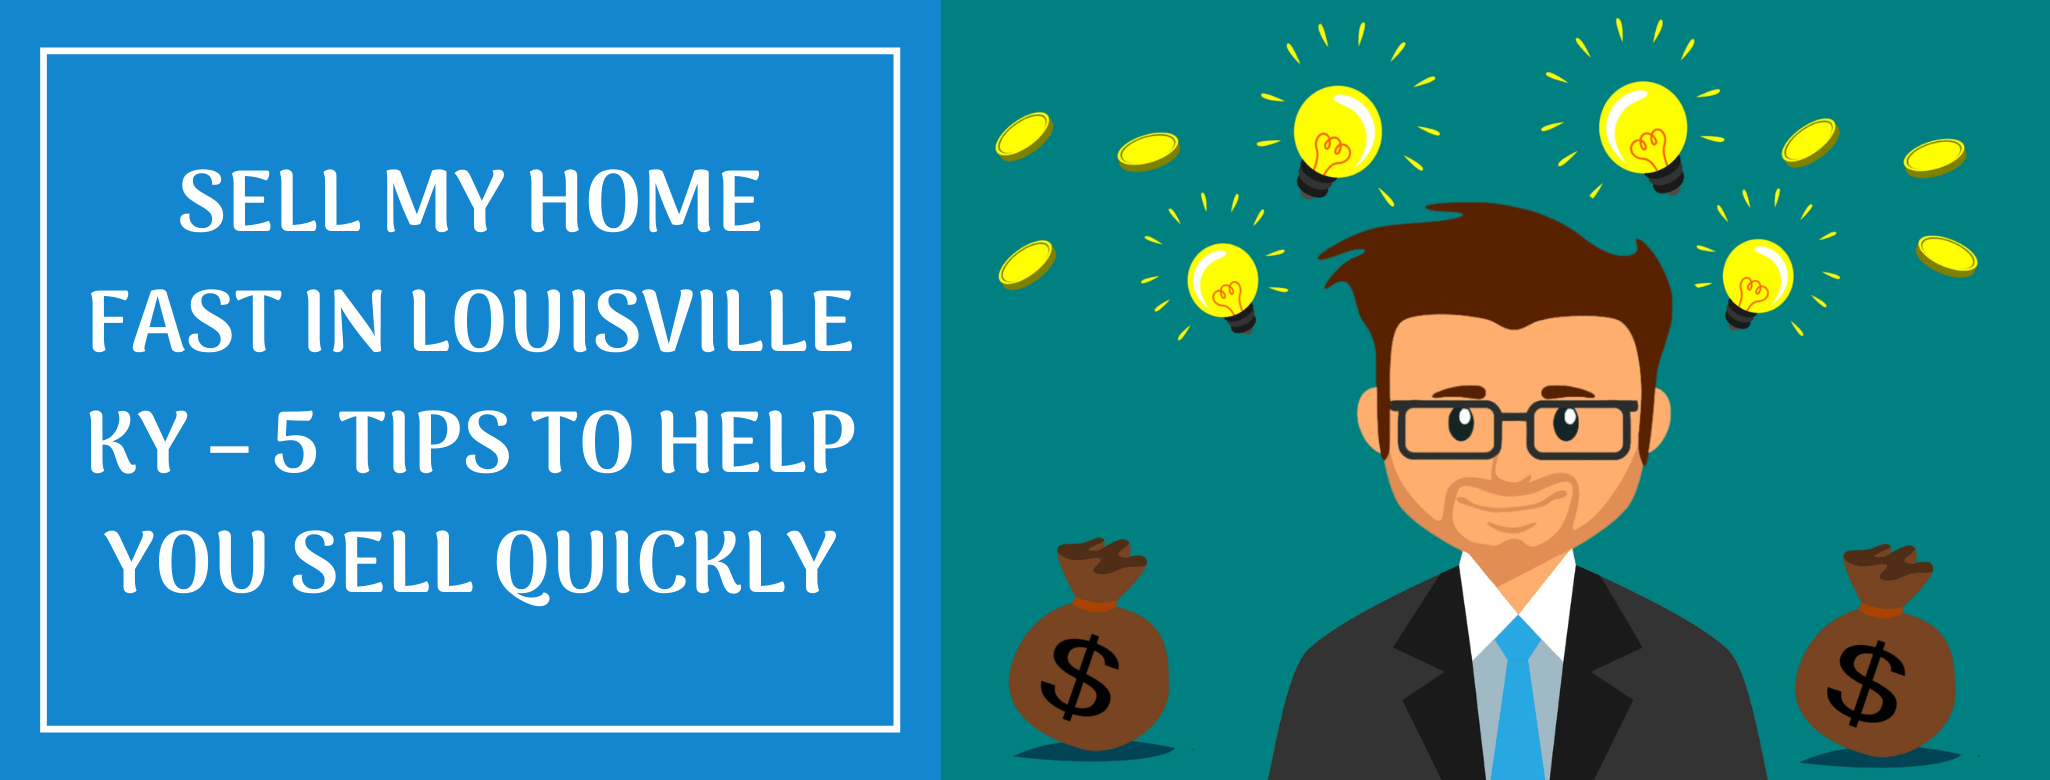 Sell your home in Louisville KY